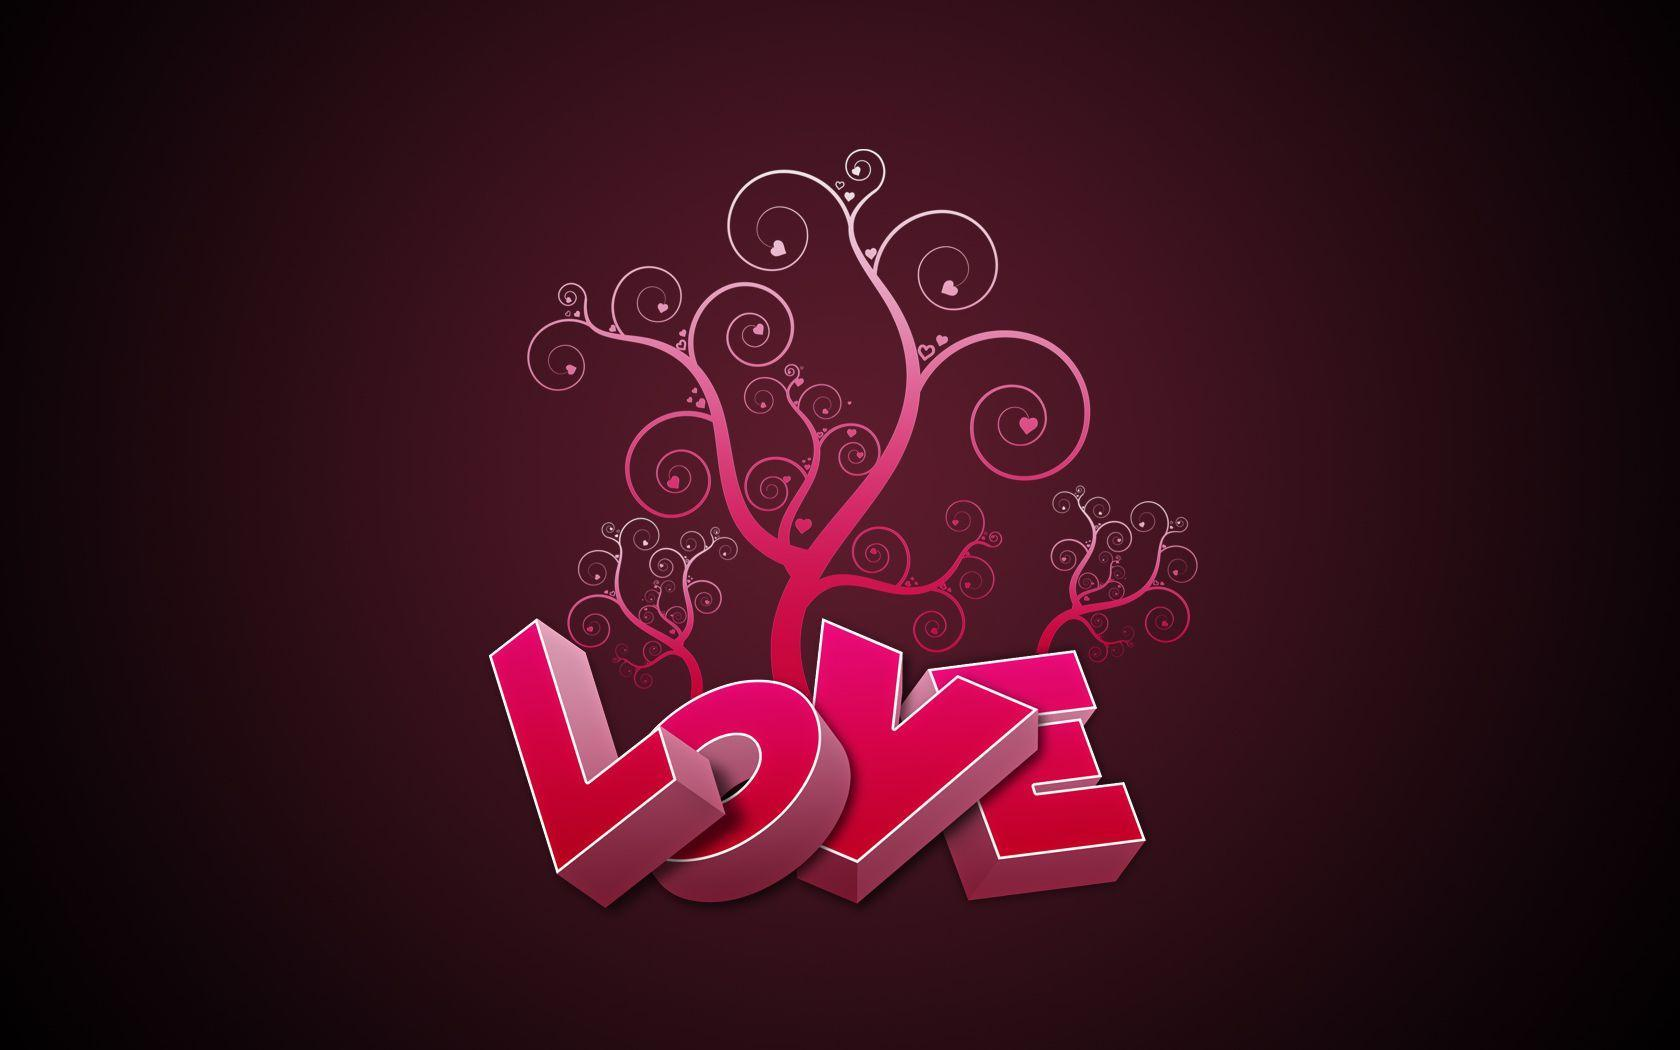 Wallpapers Love Words - Wallpaper cave